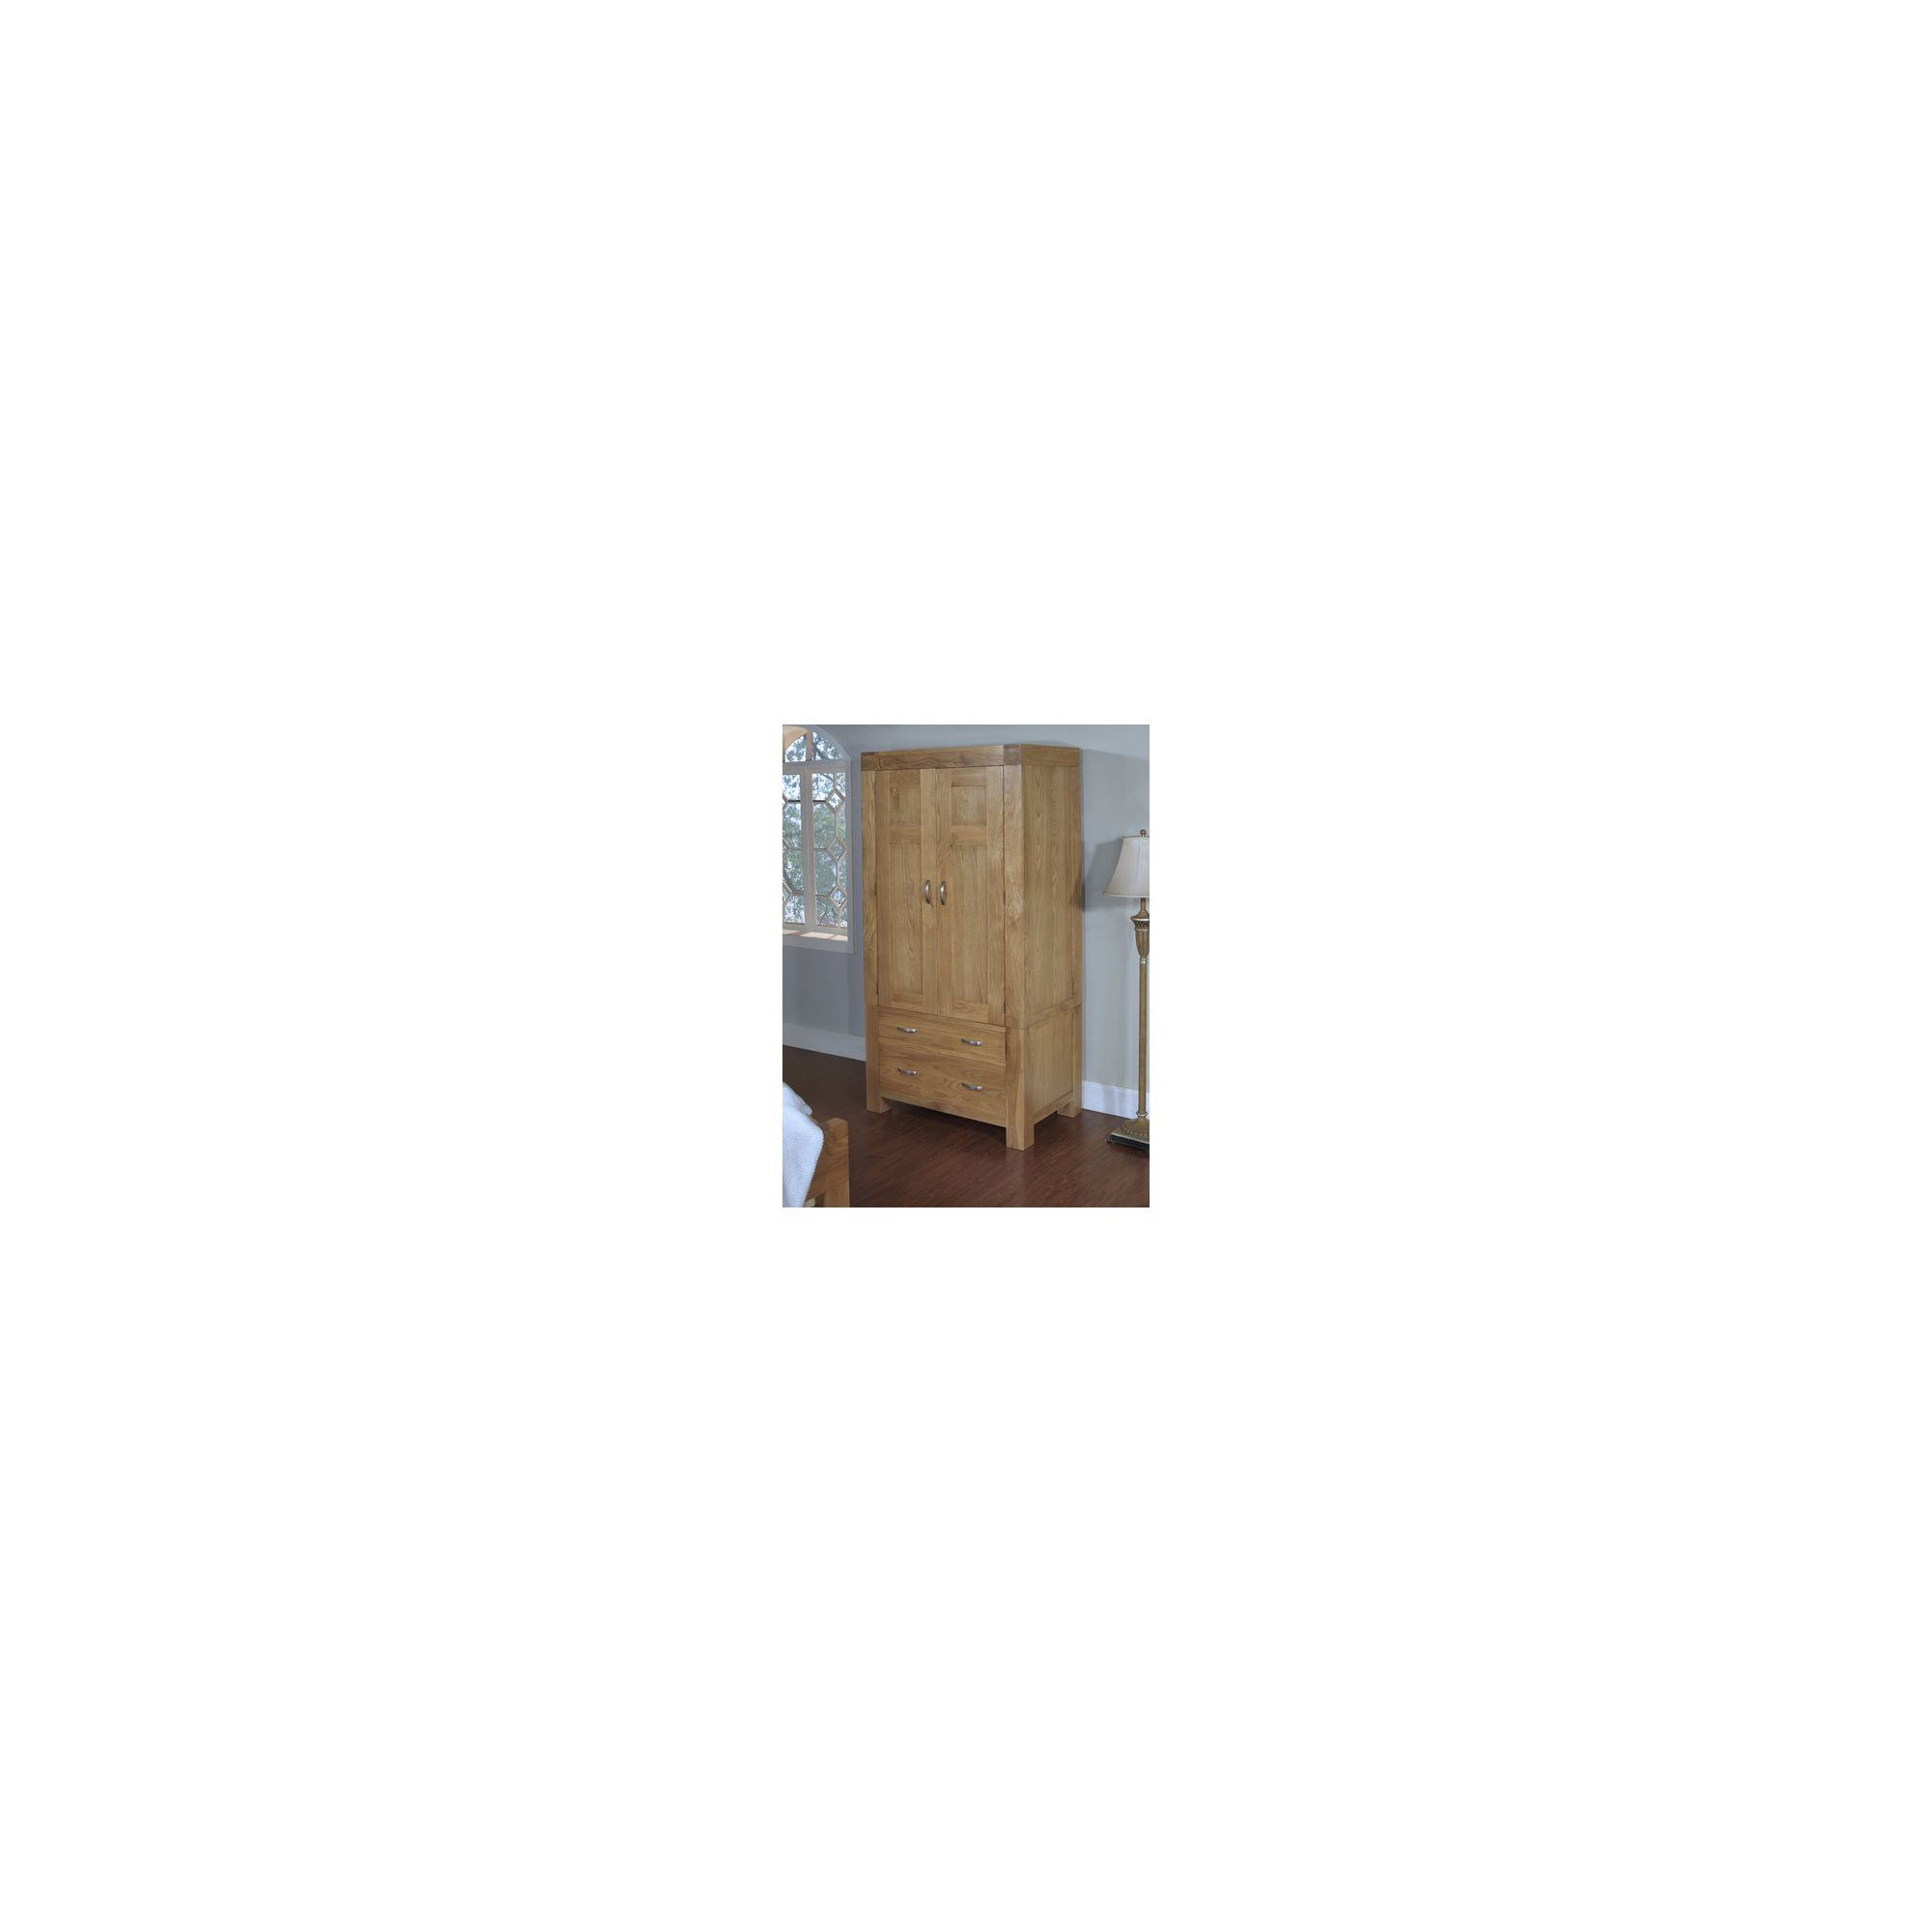 Hawkshead Rustic Oak Blonde Single Wardrobe at Tesco Direct